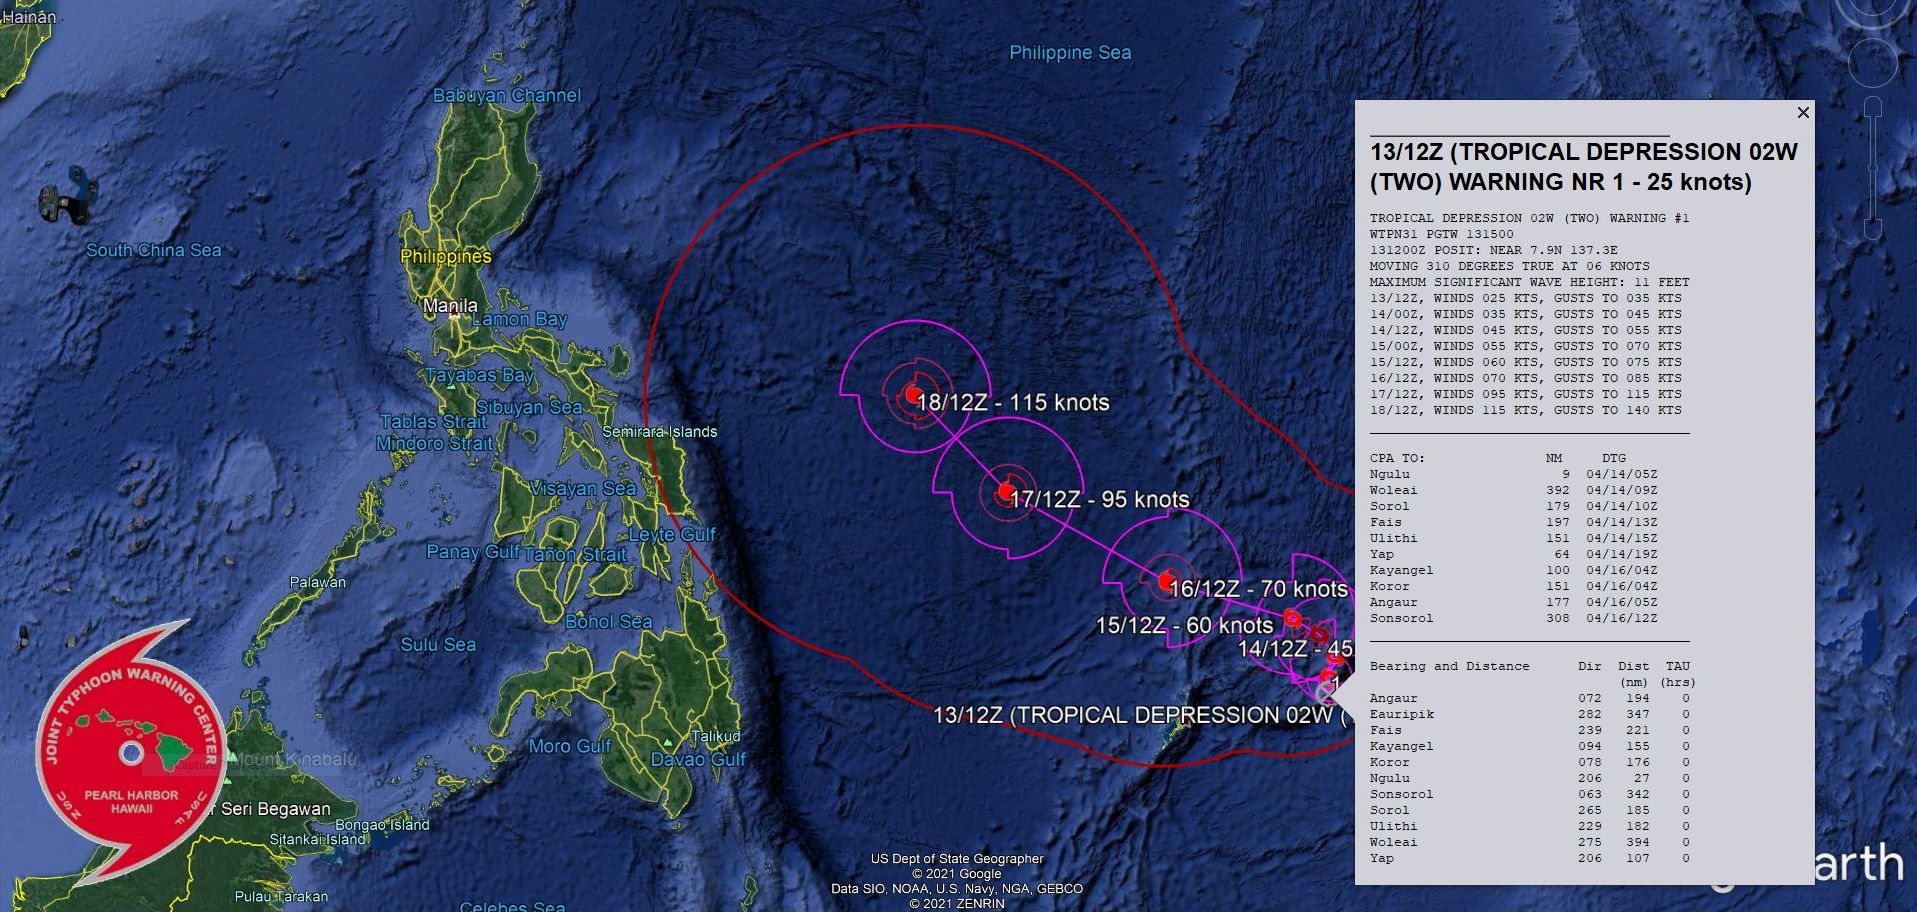 INVEST 94S IS NOW TD 02W. WARNING 1 ISSUED AT 13/15UTC.ANALYSIS INDICATES A FAVORABLE ENVIRONMENT  INCLUDING ROBUST RADIAL OUTFLOW WITH A STRONG POLEWARD BIAS, LOW (05- 10KT) VERTICAL WIND SHEAR, AND VERY WARM (30-31C) SEA SURFACE  TEMPERATURE IN THE PHILIPPINE SEA. THE CYCLONE IS TRACKING  ALONG  THE NORTHWEST PERIPHERY OF A LOW REFLECTION OF THE NEAR EQUATORIAL  RIDGE TO THE EAST-SOUTHEAST. TD 02W WILL TRACK SLOWLY NORTHWARD OR MAY EVEN BECOME QUASI- STATIONARY OVER THE NEXT 24HRS AS A SUBTROPICAL RIDGE (STR) TO THE  NORTHWEST BUILDS AND COMPETES FOR STEERING. AFTERWARD, A MIDLATITUDE  TROUGH DIGGING IN FROM CHINA WILL BREAK THE RIDGE. THE EASTERN SIDE  OF THE STR TO THE NORTHEAST WILL ASSUME STEERING AND DRIVE TD 02W  NORTHWESTWARD. THE AFOREMENTIONED FAVORABLE ENVIRONMENT WILL PROMOTE  STEADY INTENSIFICATION TO 70KTS/US CAT 1 BY 72H.  AFTER 72H, TD 02W WILL CONTINUE NORTHWESTWARD TOWARD THE  BREAK IN THE RIDGE UNDER THE STEERING INFLUENCE OF THE SAME STR. A  RAPID INTENSIFICATION IS EXPECTED AS THE FAVORABLE CONDITIONS ARE  FURTHER ENHANCED BY INCREASED POLEWARD OUTFLOW. BY 120H, TD 02W  WILL SURGE TO 115KNOTS/US CAT 4, POSSIBLY HIGHER.